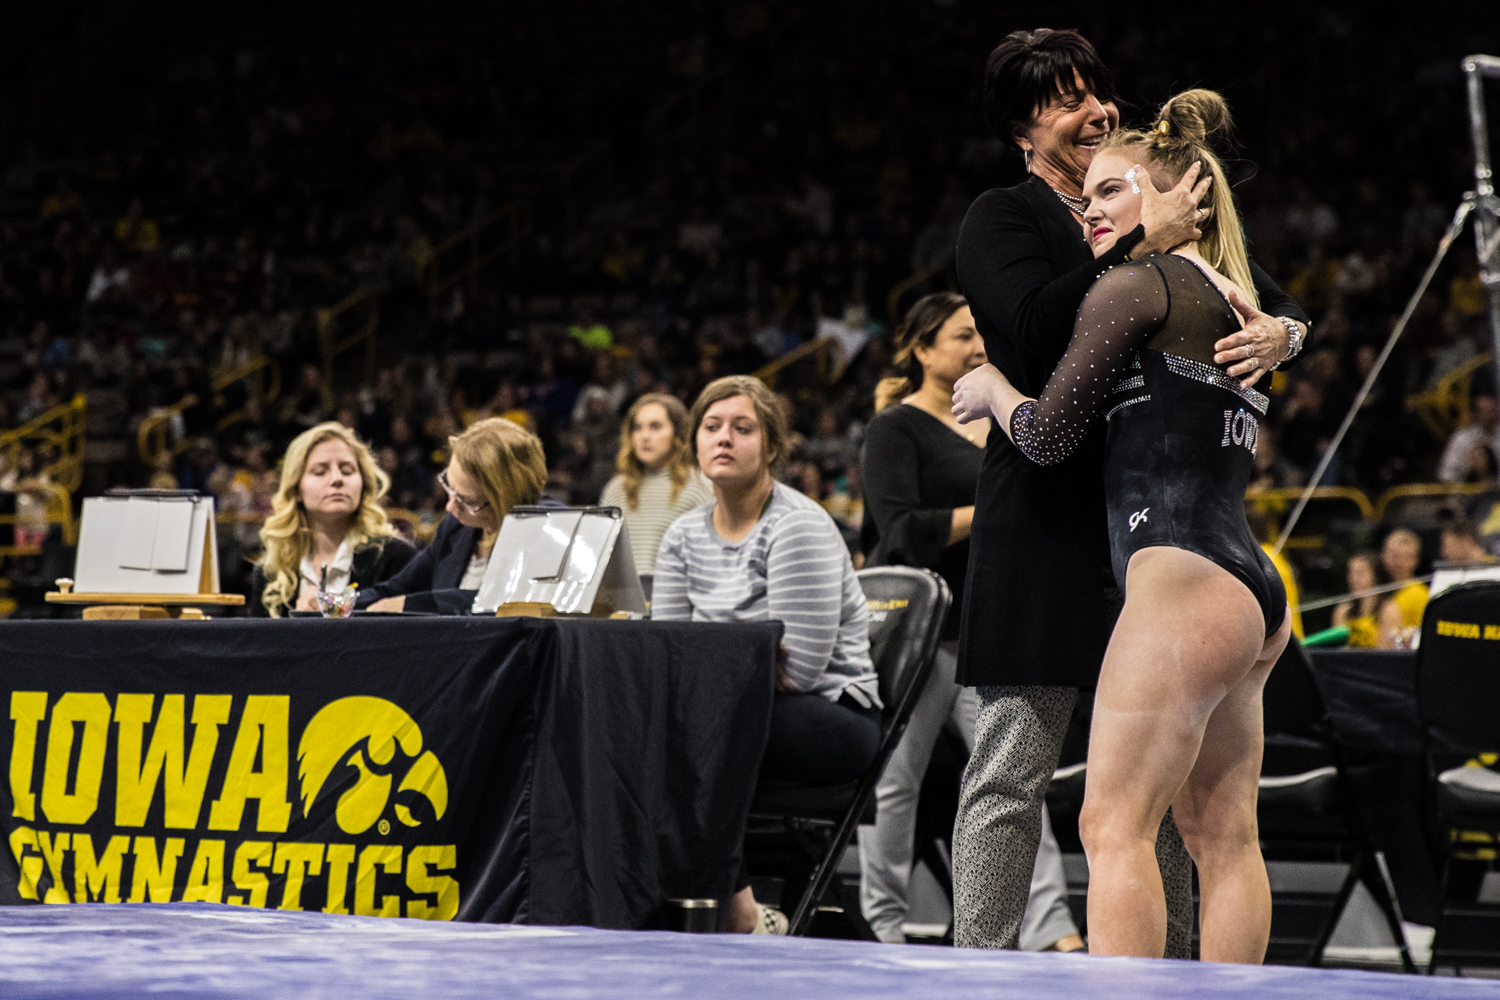 Iowa+assistant+coach++Jennifer+Green+embraces+Charlotte+Sullivan+during+a+women%27s+gymnastics+meet+between+Iowa+and+Iowa+State+at+Carver-Hawkeye+Arena+on+Friday%2C+March+1%2C+2019.+The+Hawkeyes%2C+celebrating+senior+night%2C+fell+to+the+Cyclones%2C+196.275-196.250.+